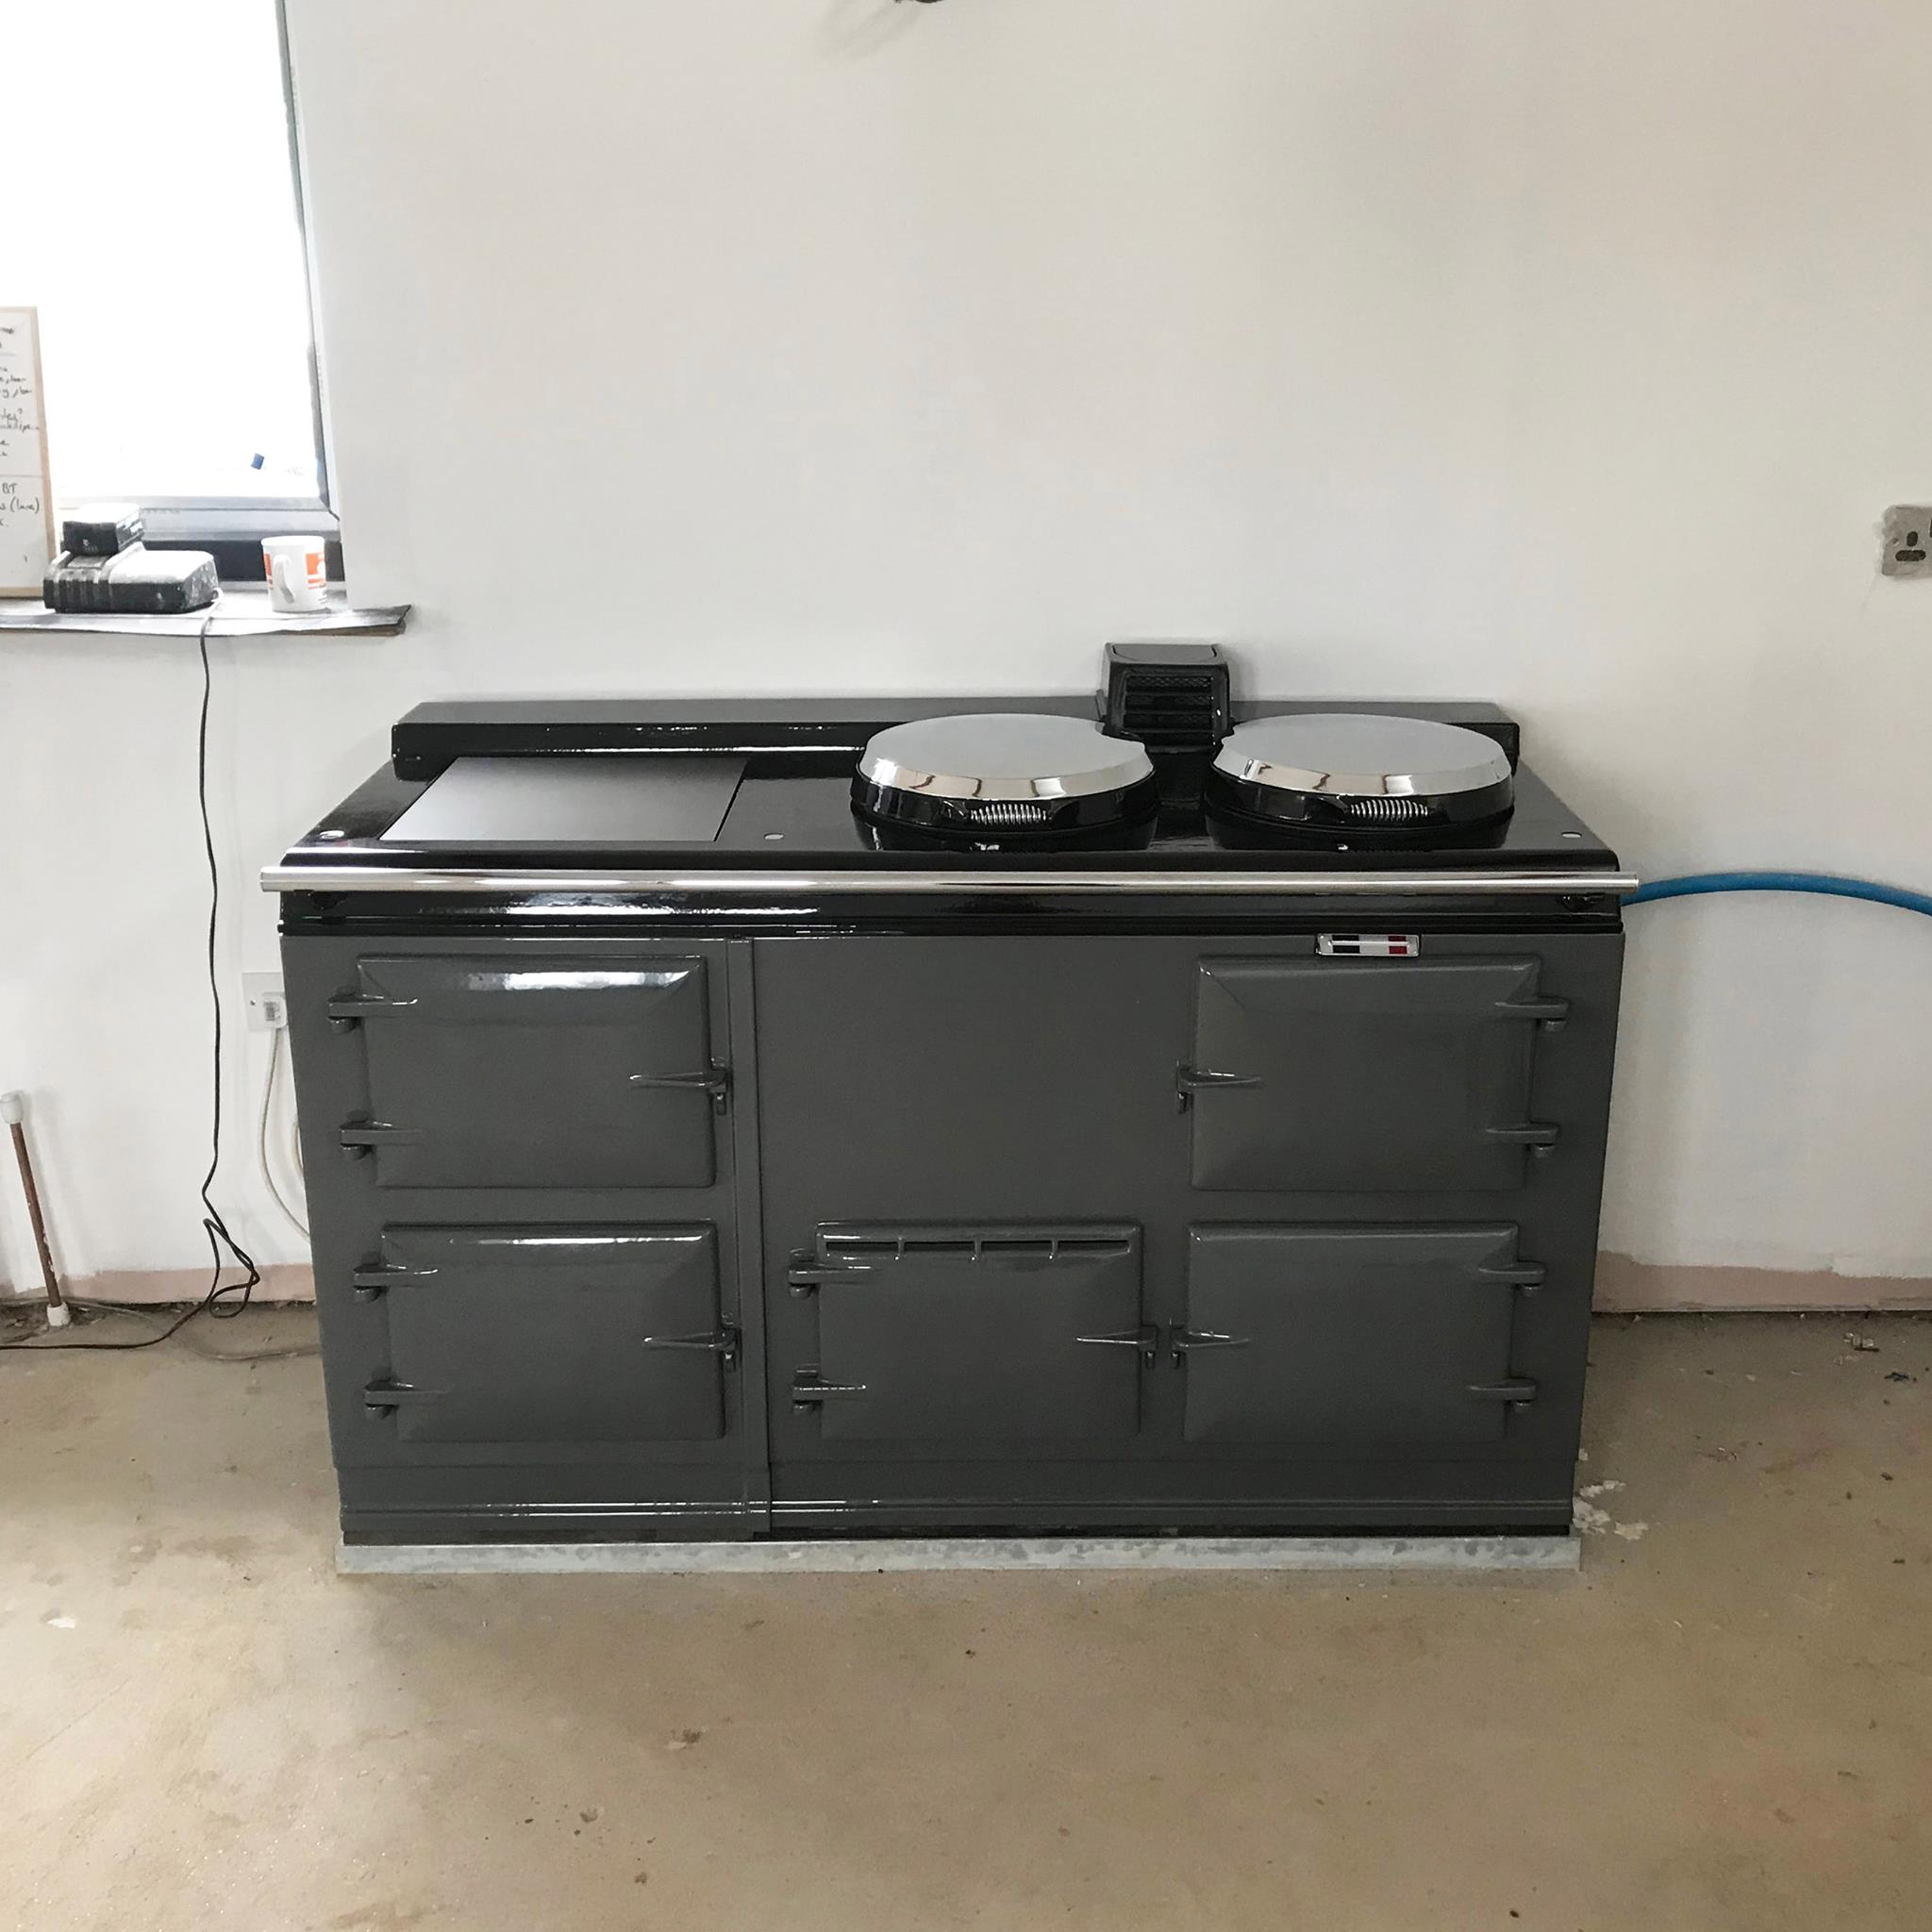 Refurbished 4 oven Aga range cooker